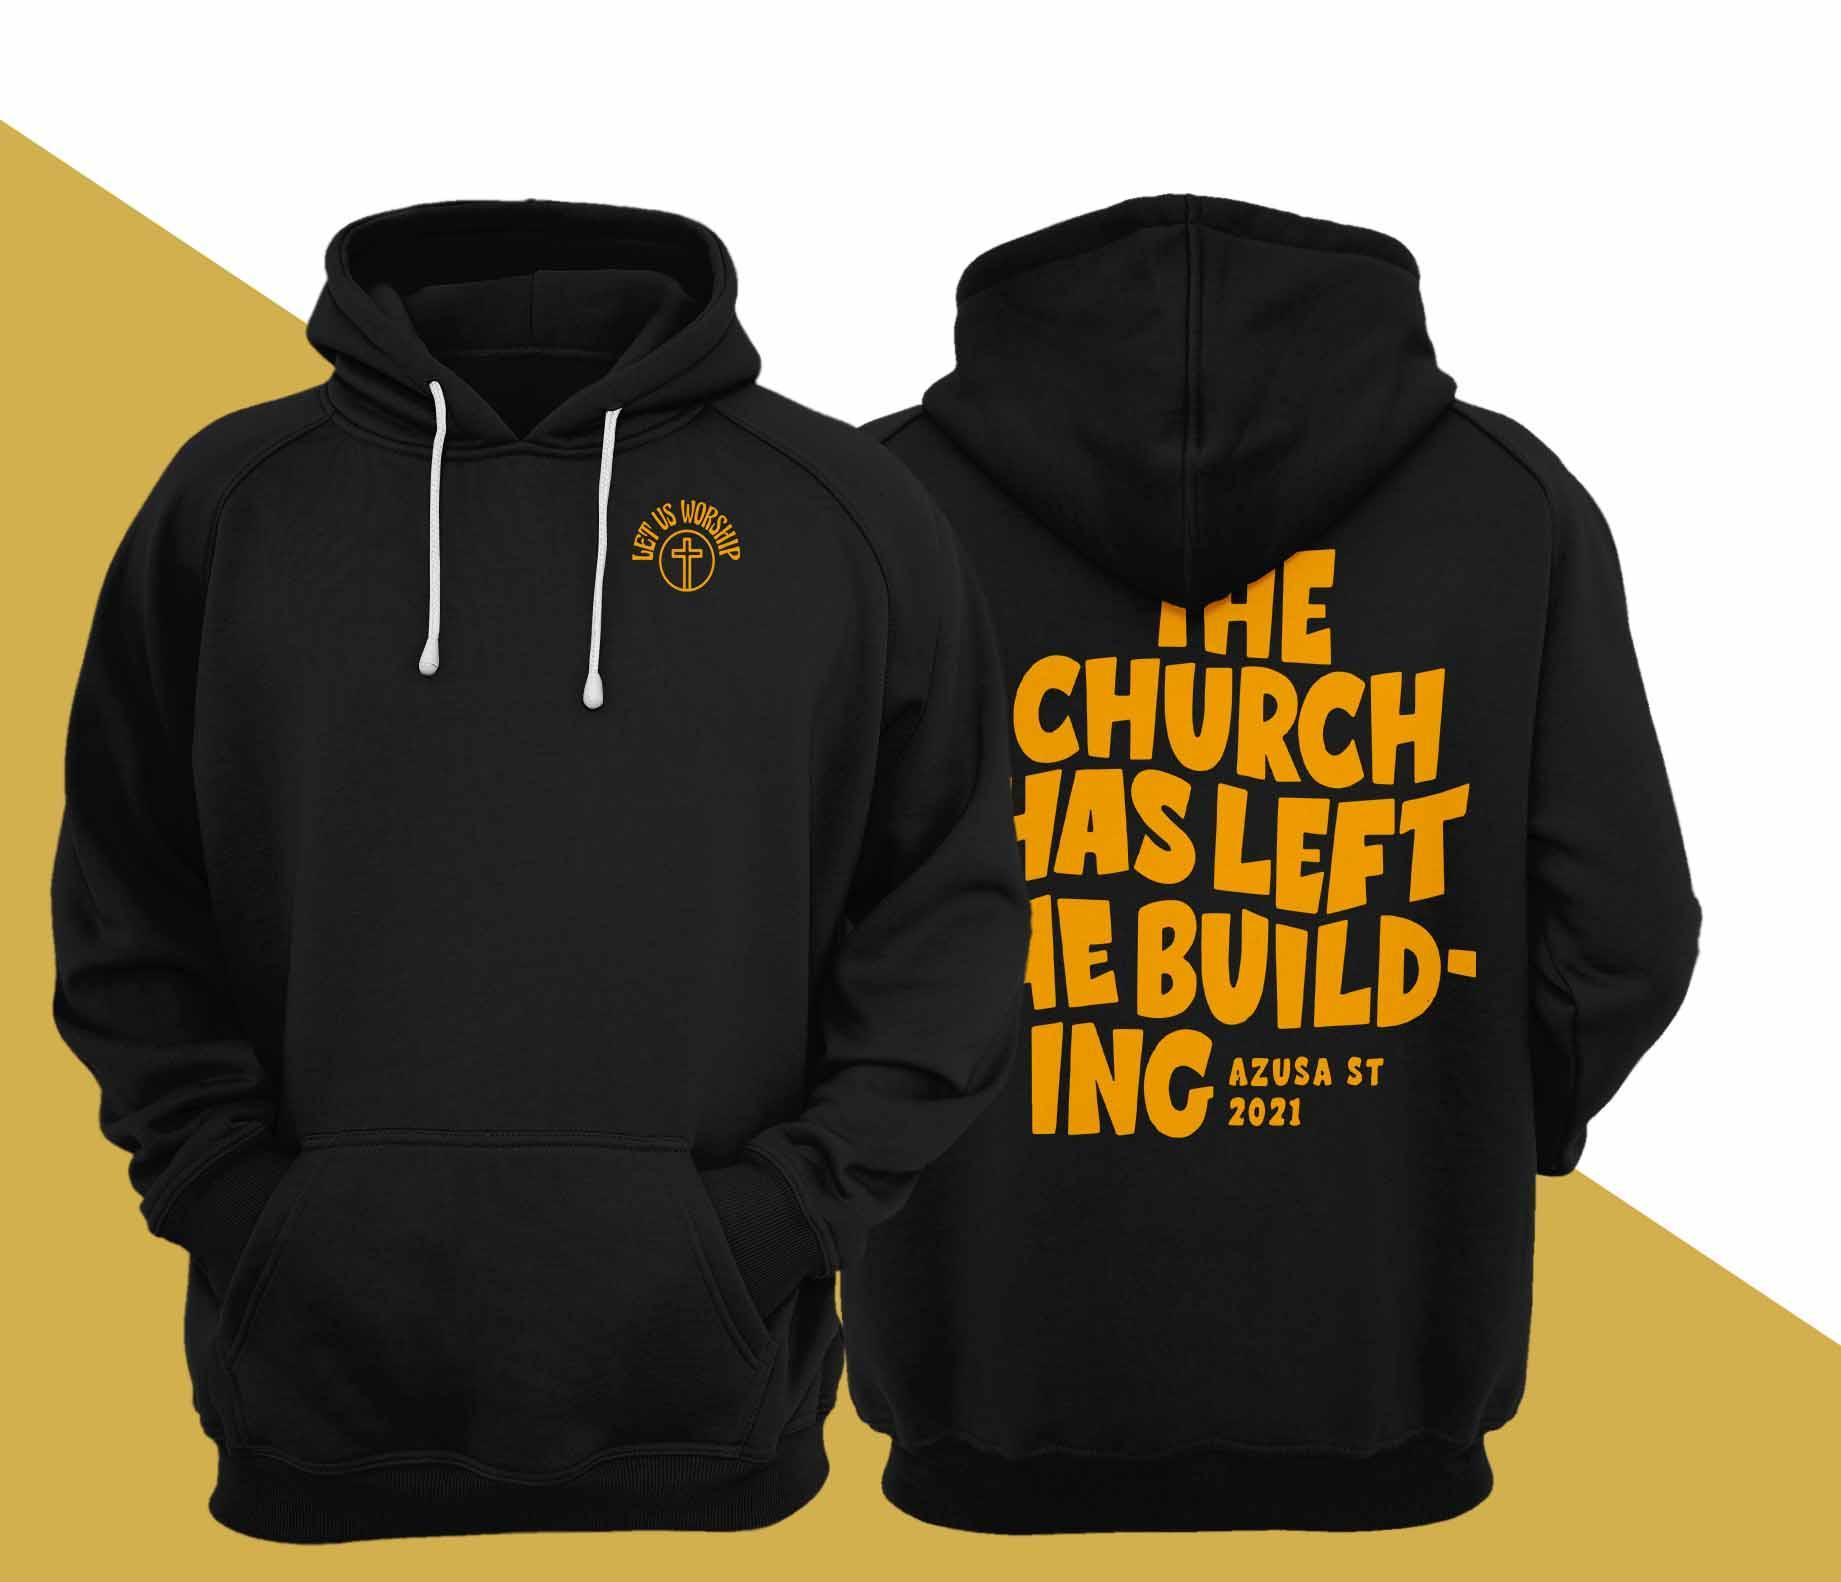 The Church Has Left The Building Azusa St 2021 Hoodie